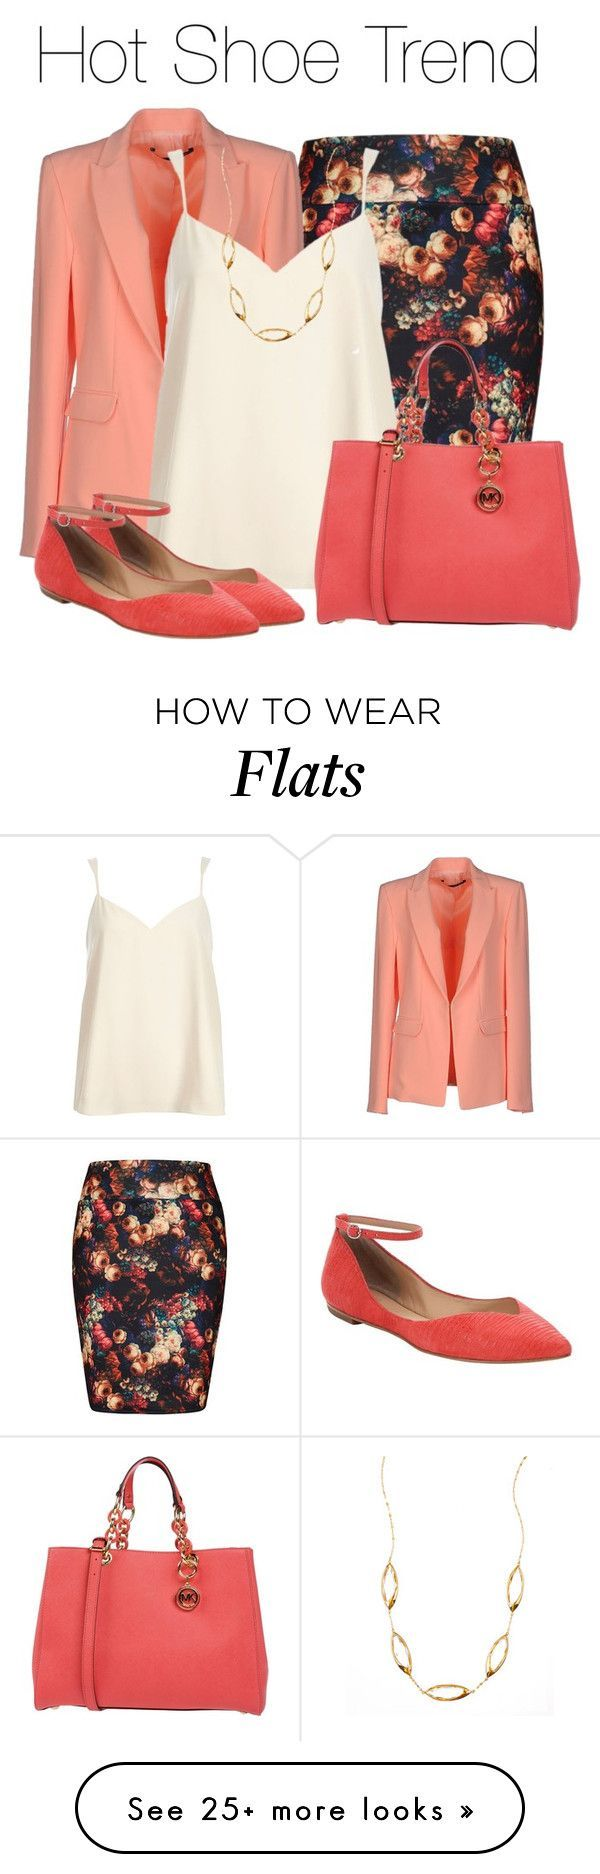 """""""So Stylish: Ankle Wrap Flats"""" by earthlyangel on Polyvore featuring City Chic, Annarita N., River Island, belle by Sigerson Morrison, MICHAEL Michael Kors, Lana, contest and anklewrapflats Women, Men and Kids Outfit Ideas on our website at 7ootd.com #ootd #7ootd"""